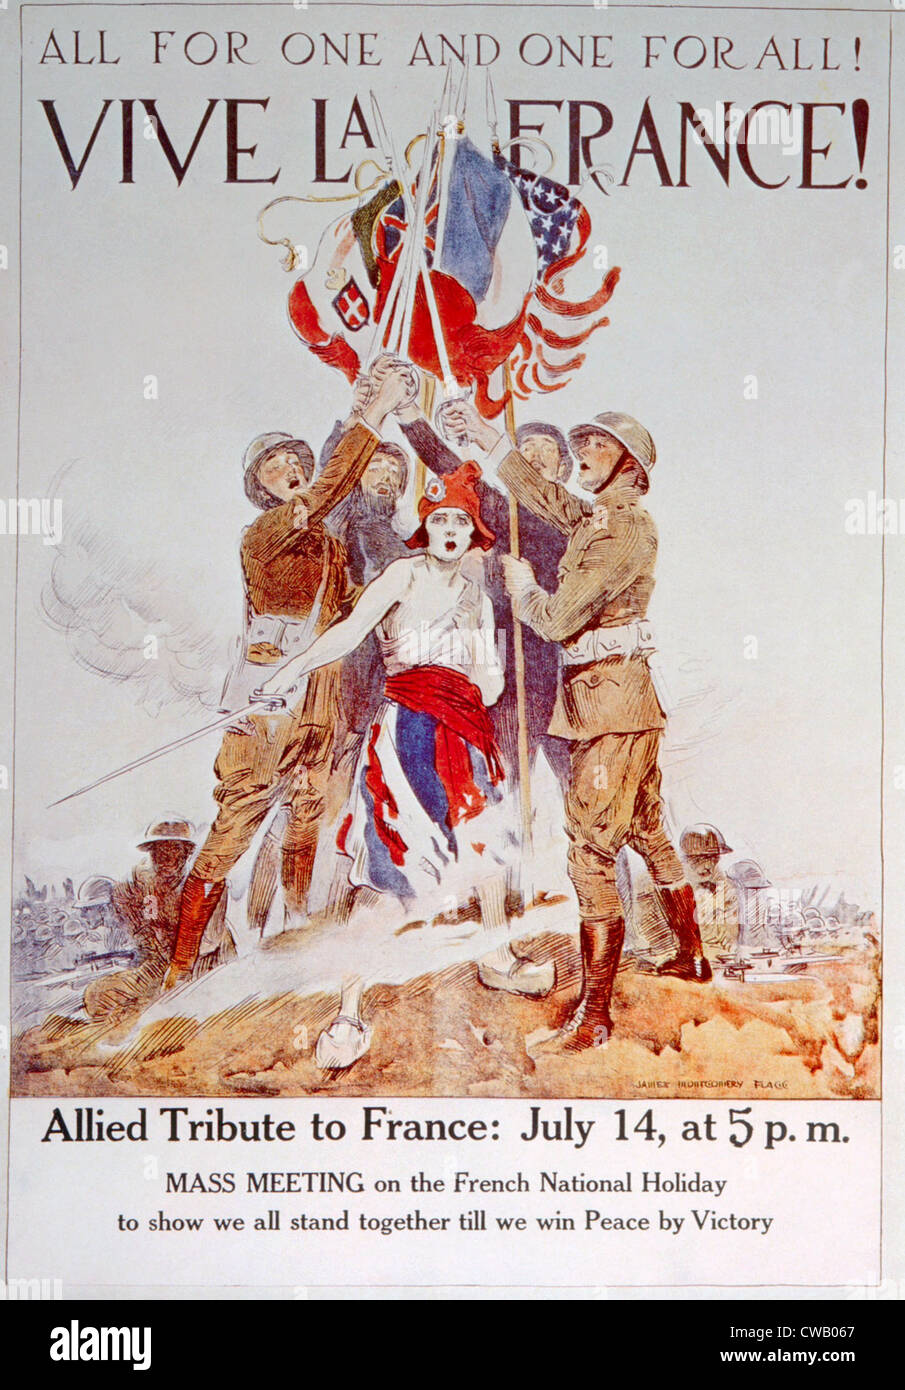 World War I American poster depicting Allied nations unity by James Montgomery Flagg, 1918 - Stock Image